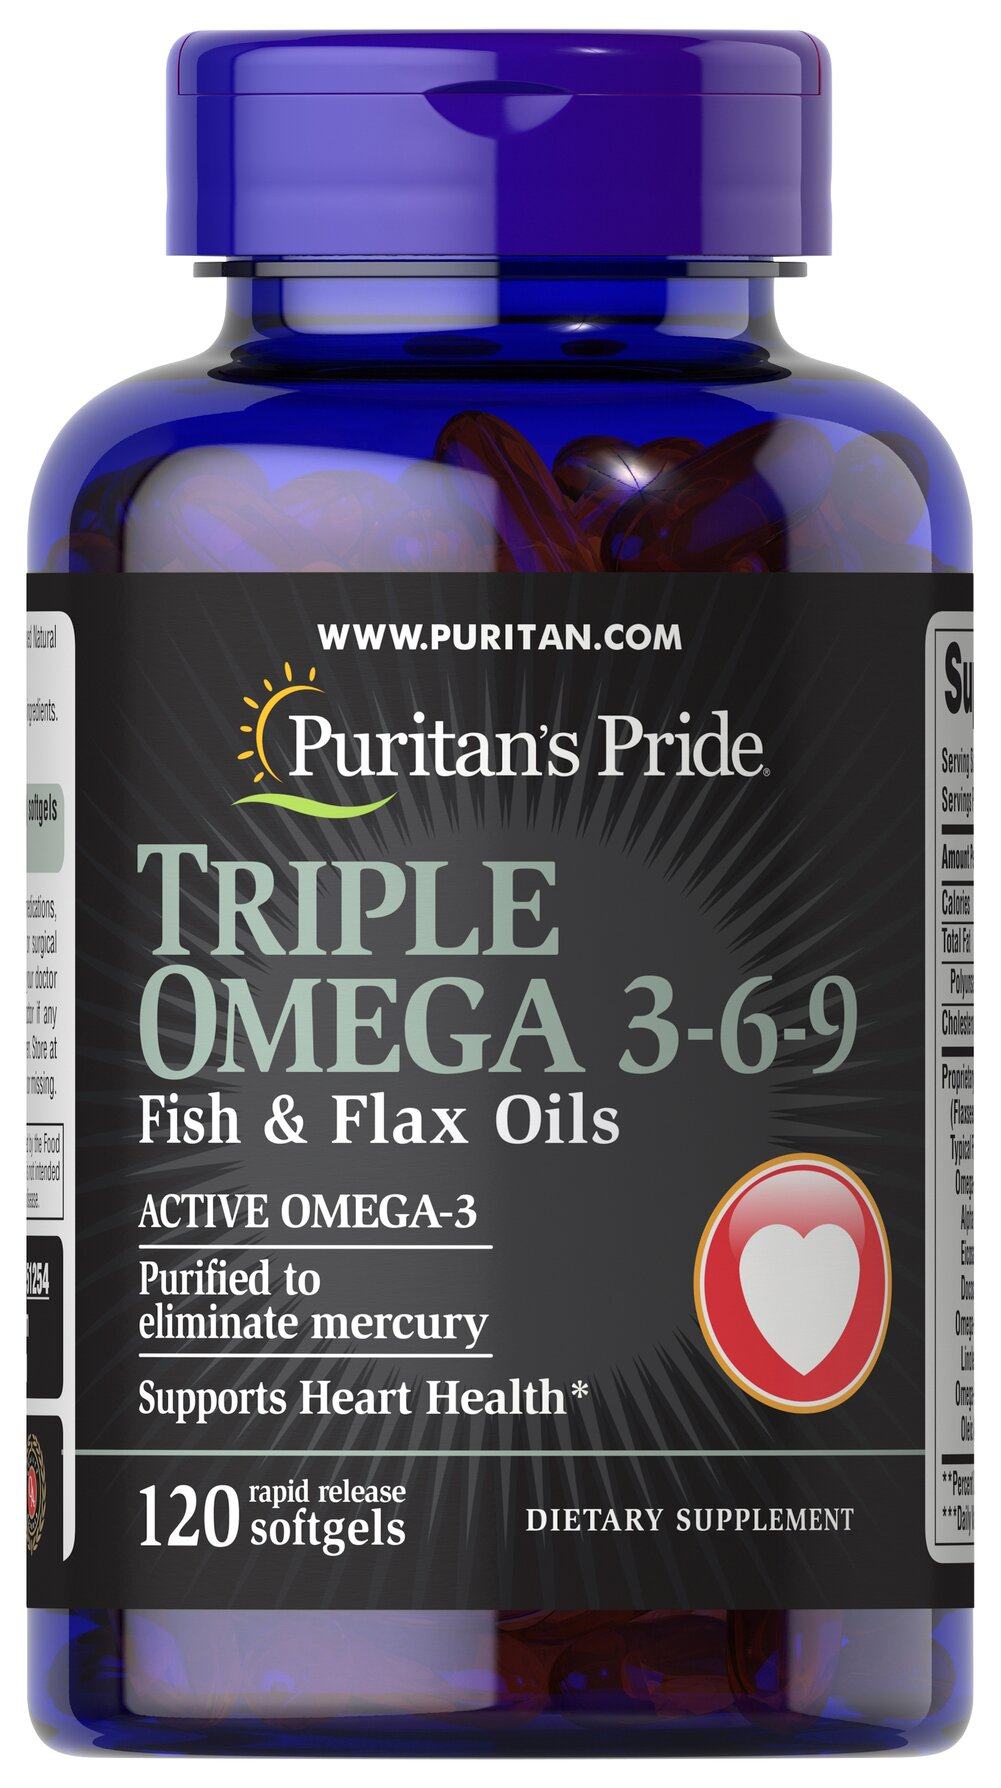 "Triple Omega 3-6-9 Fish & Flax Oils <p>Contains Omega-3, Omega-6 and Omega-9 – the ""good"" fats important for cellular, heart and metabolic health.**  </p>  <p>TRIPLE OMEGA 3-6-9 Fish and Flax Oils contain a proprietary blend of essential oils, including Flaxseed Oil and  Ester Omega Fish Oil. </p>  <p>Supports Heart Health.* </p>  <b><p>Purified to eliminate mercury.</b></p>   120 Softgels  $18.99"